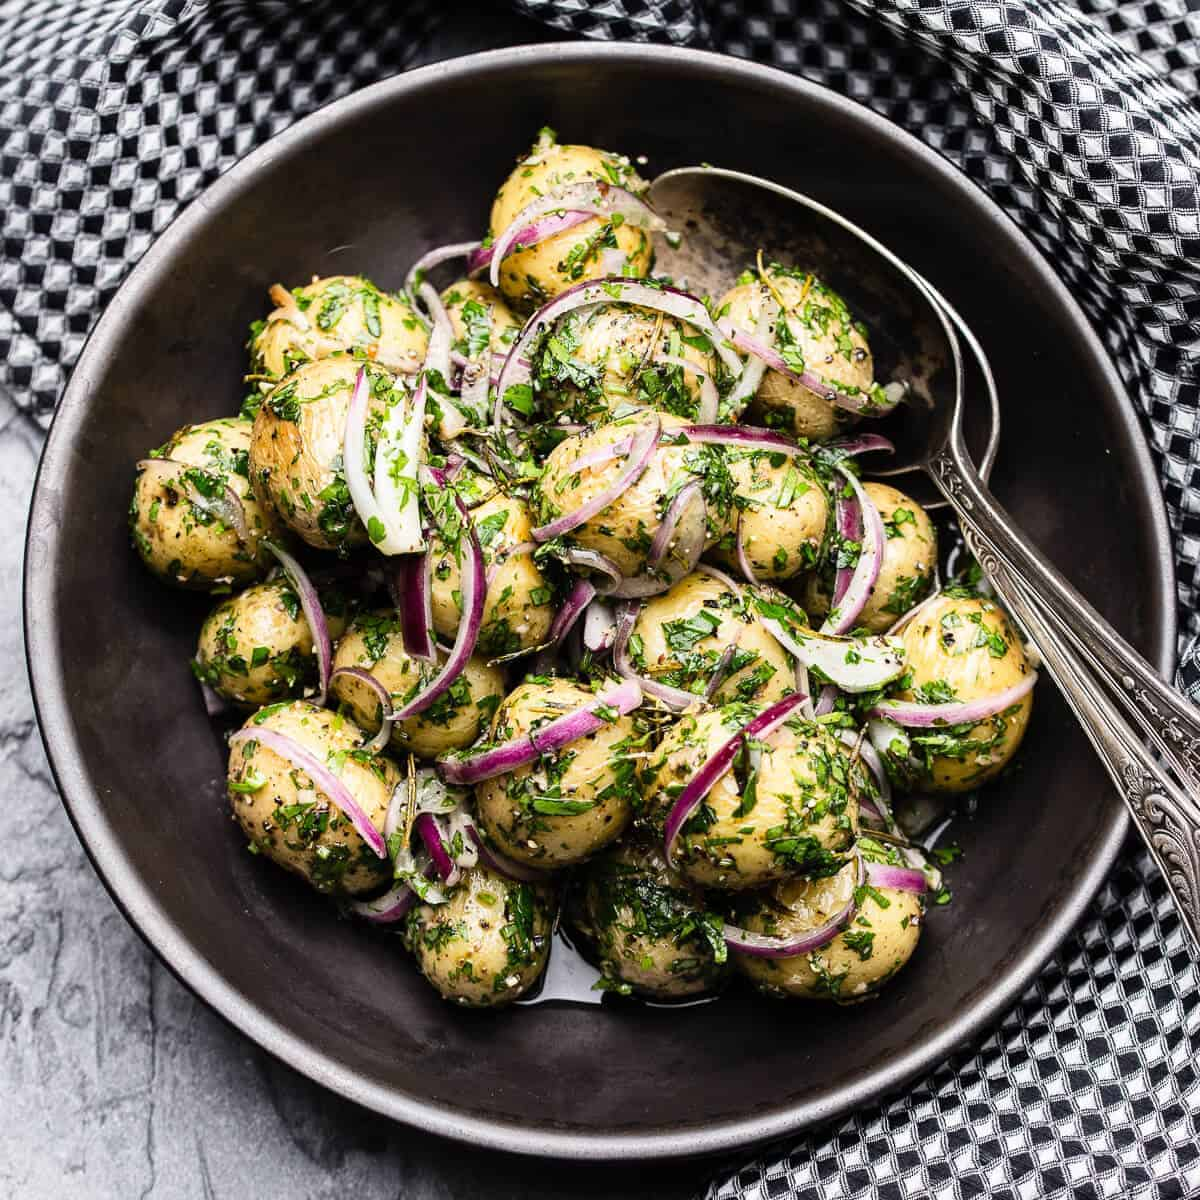 warm potato salad with red onion and parsley in a black bowl with black and white checkered napkin